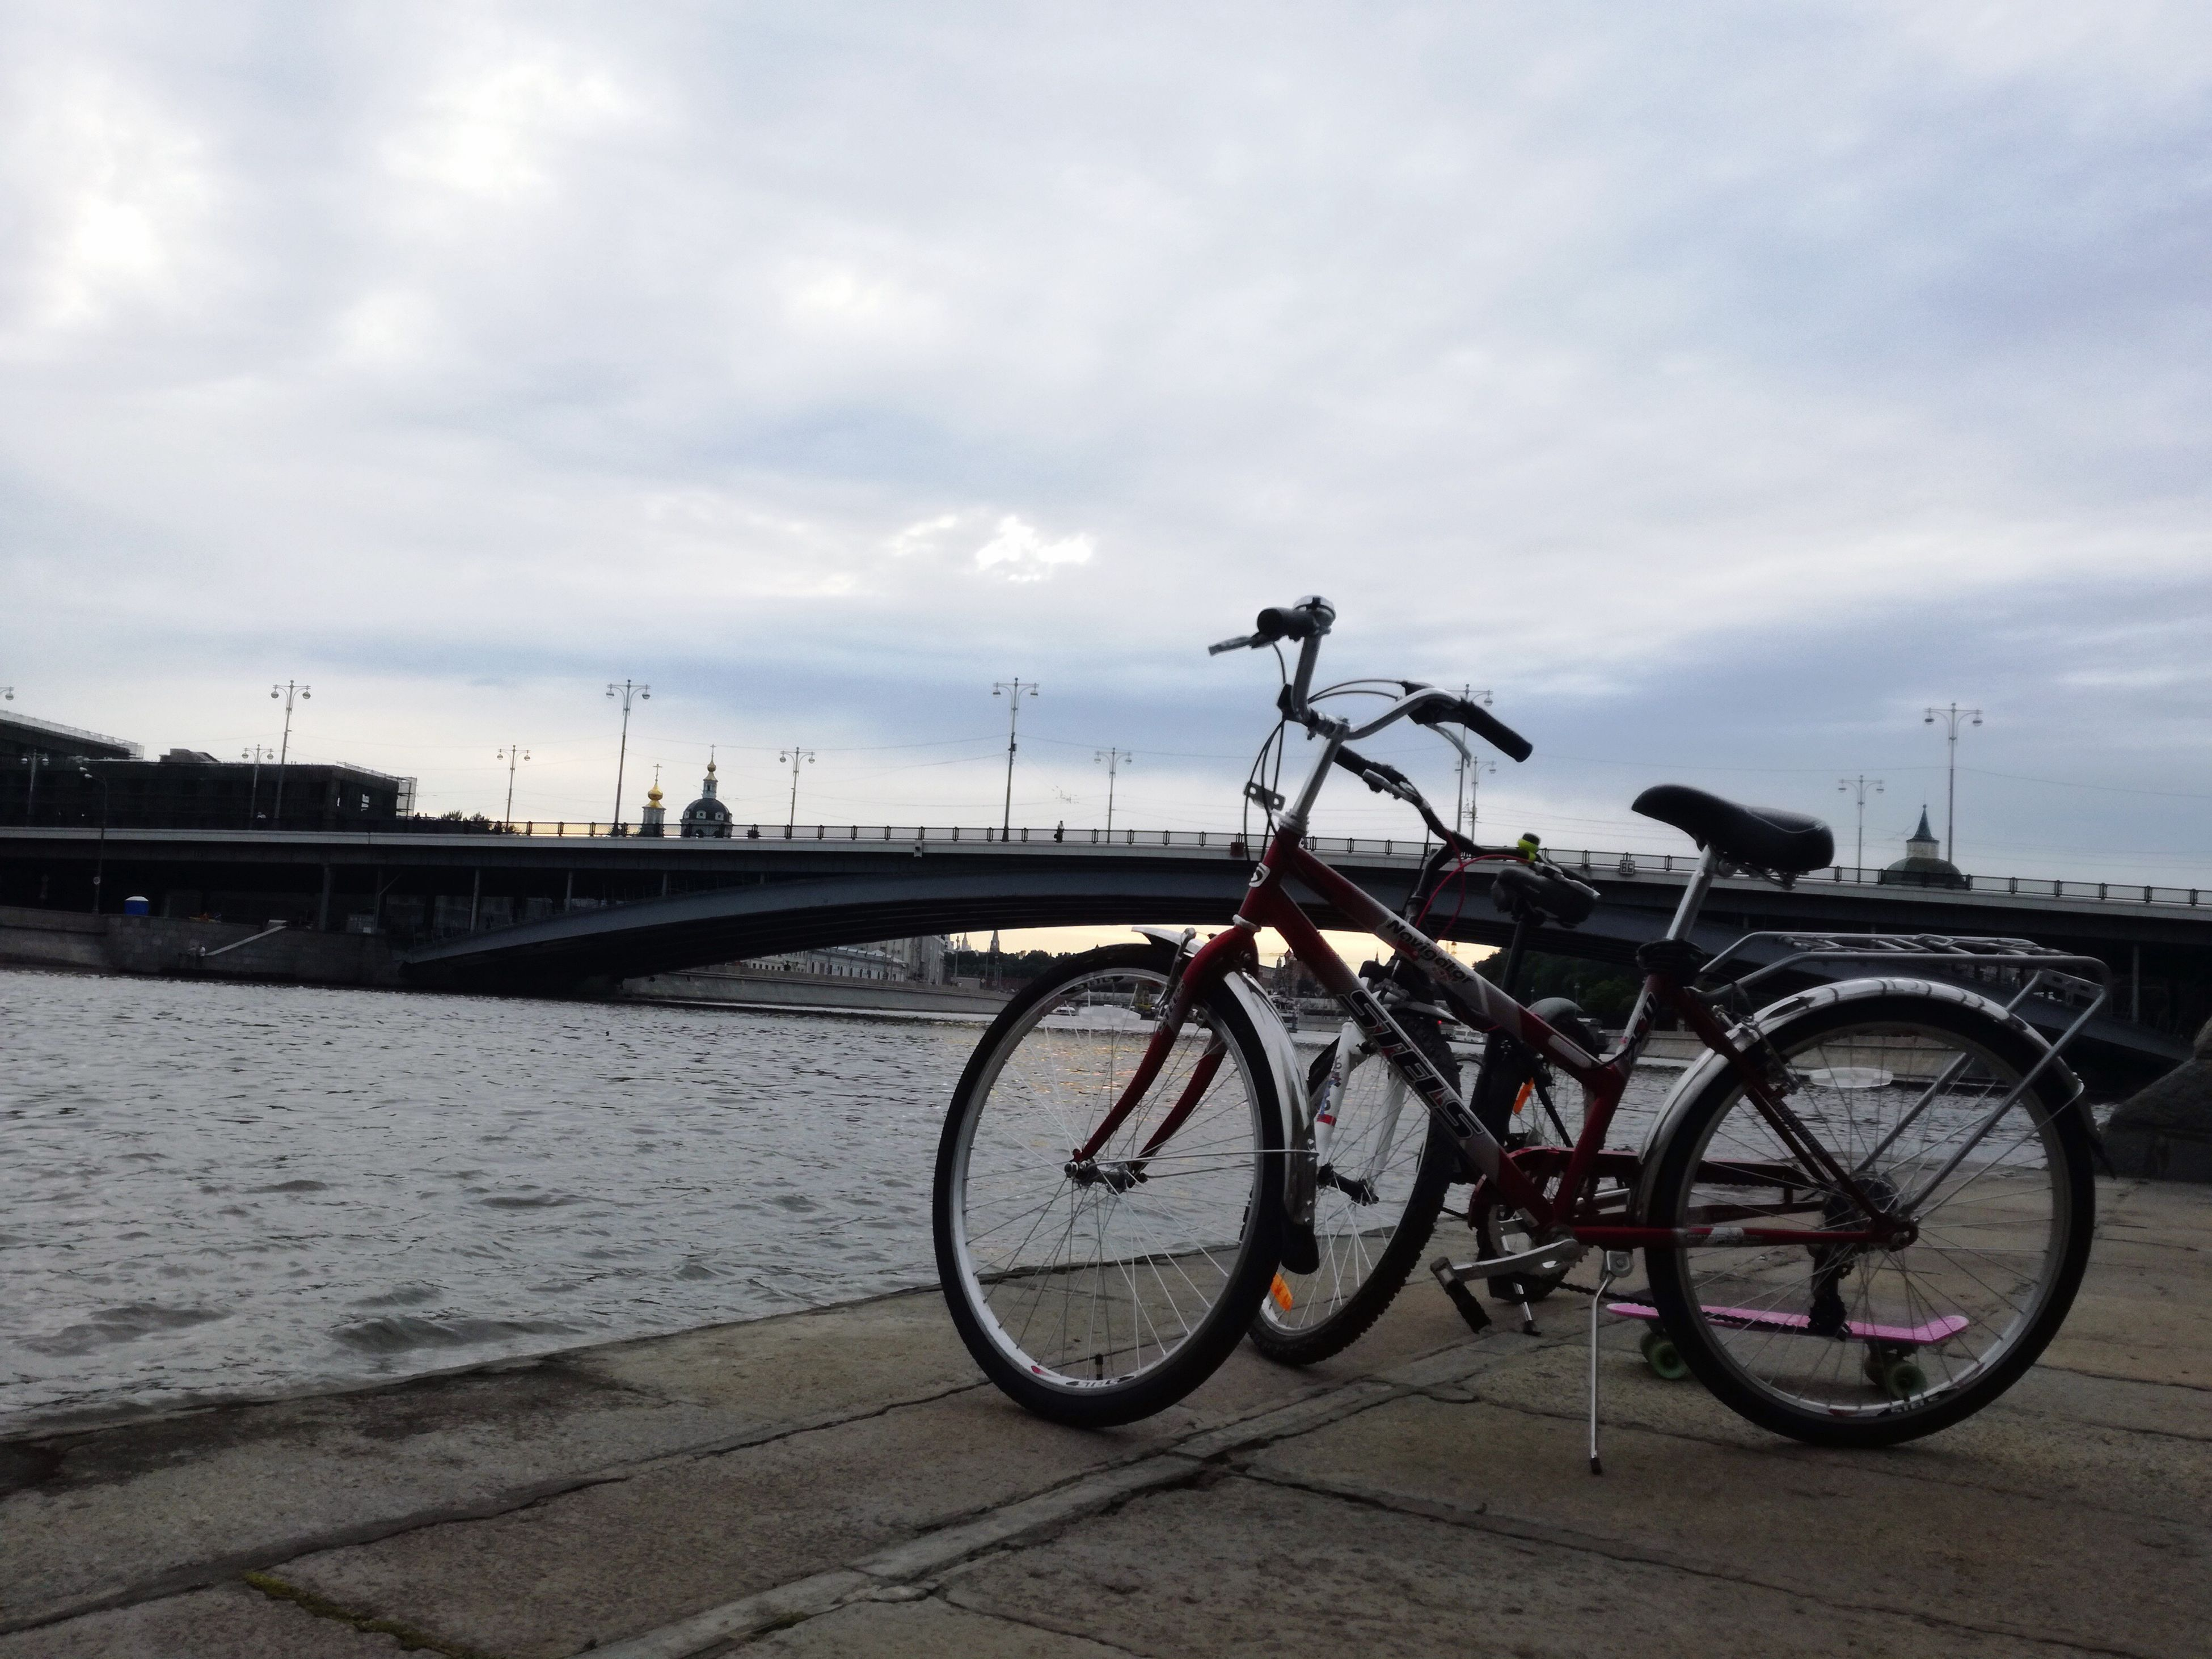 bicycle, transportation, mode of transport, sky, water, land vehicle, outdoors, no people, bridge - man made structure, built structure, sea, cloud - sky, city, day, architecture, nature